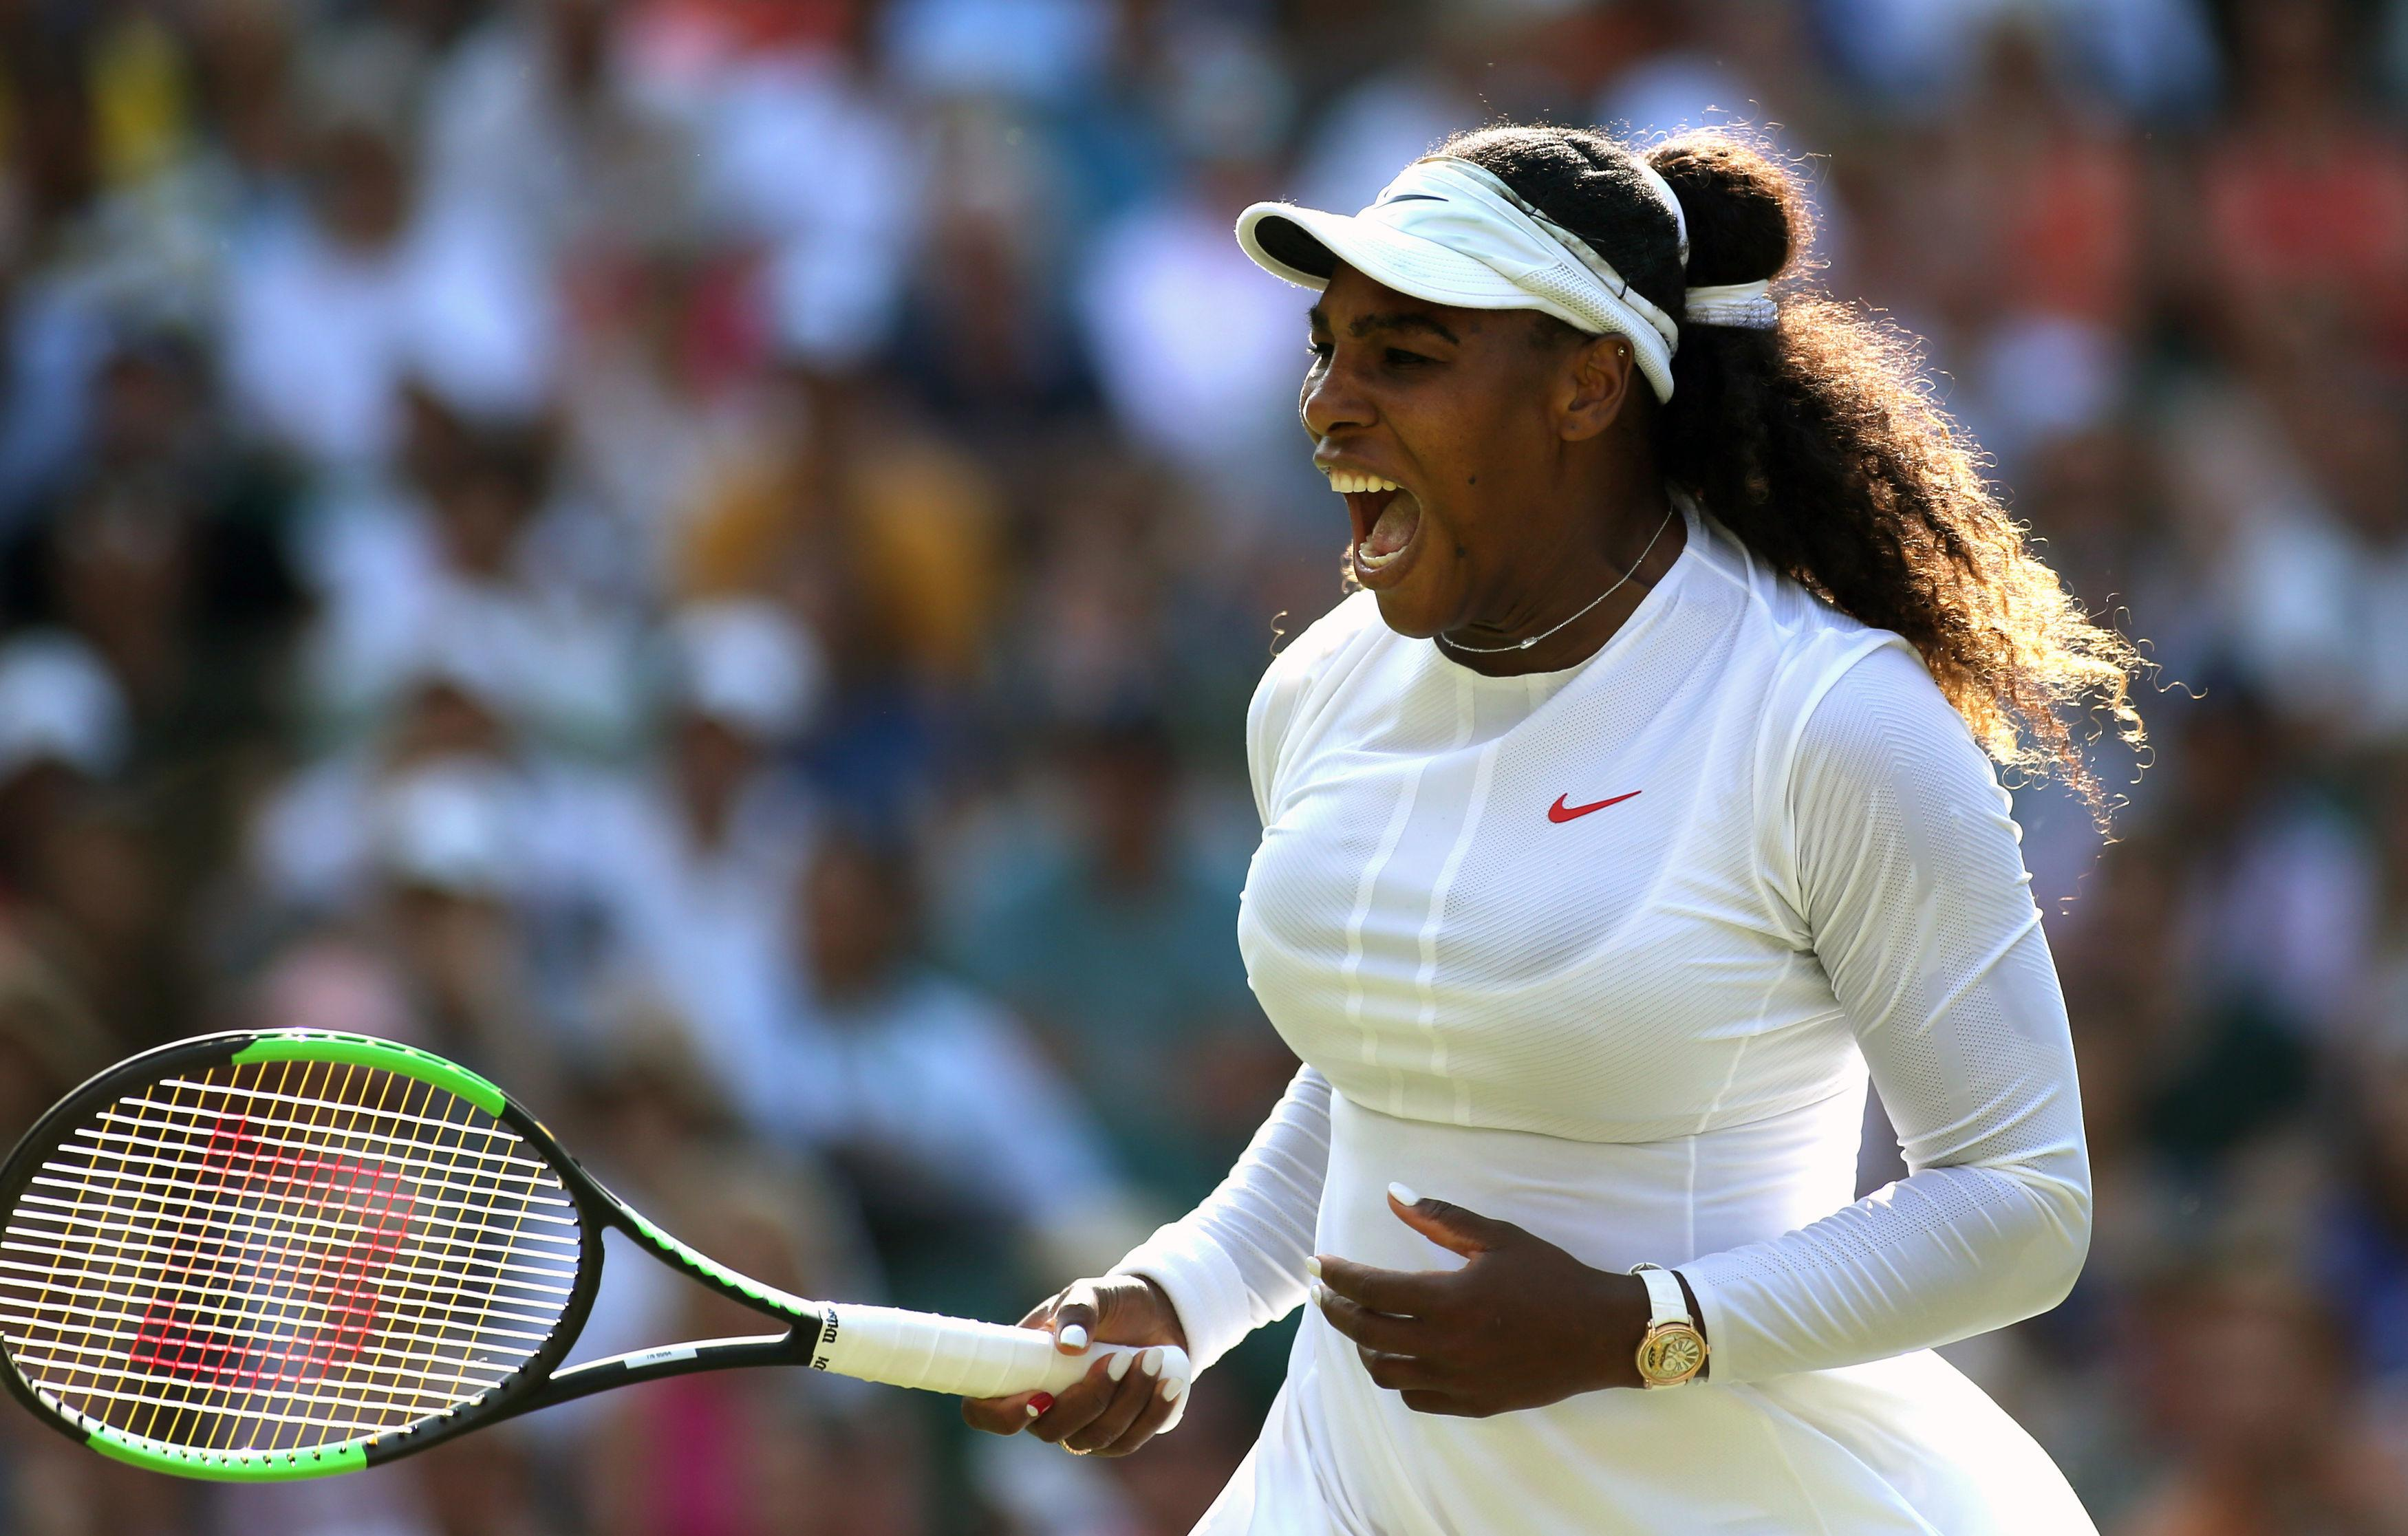 Serena Williams is finding her form and fitness with every game at Wimbledon